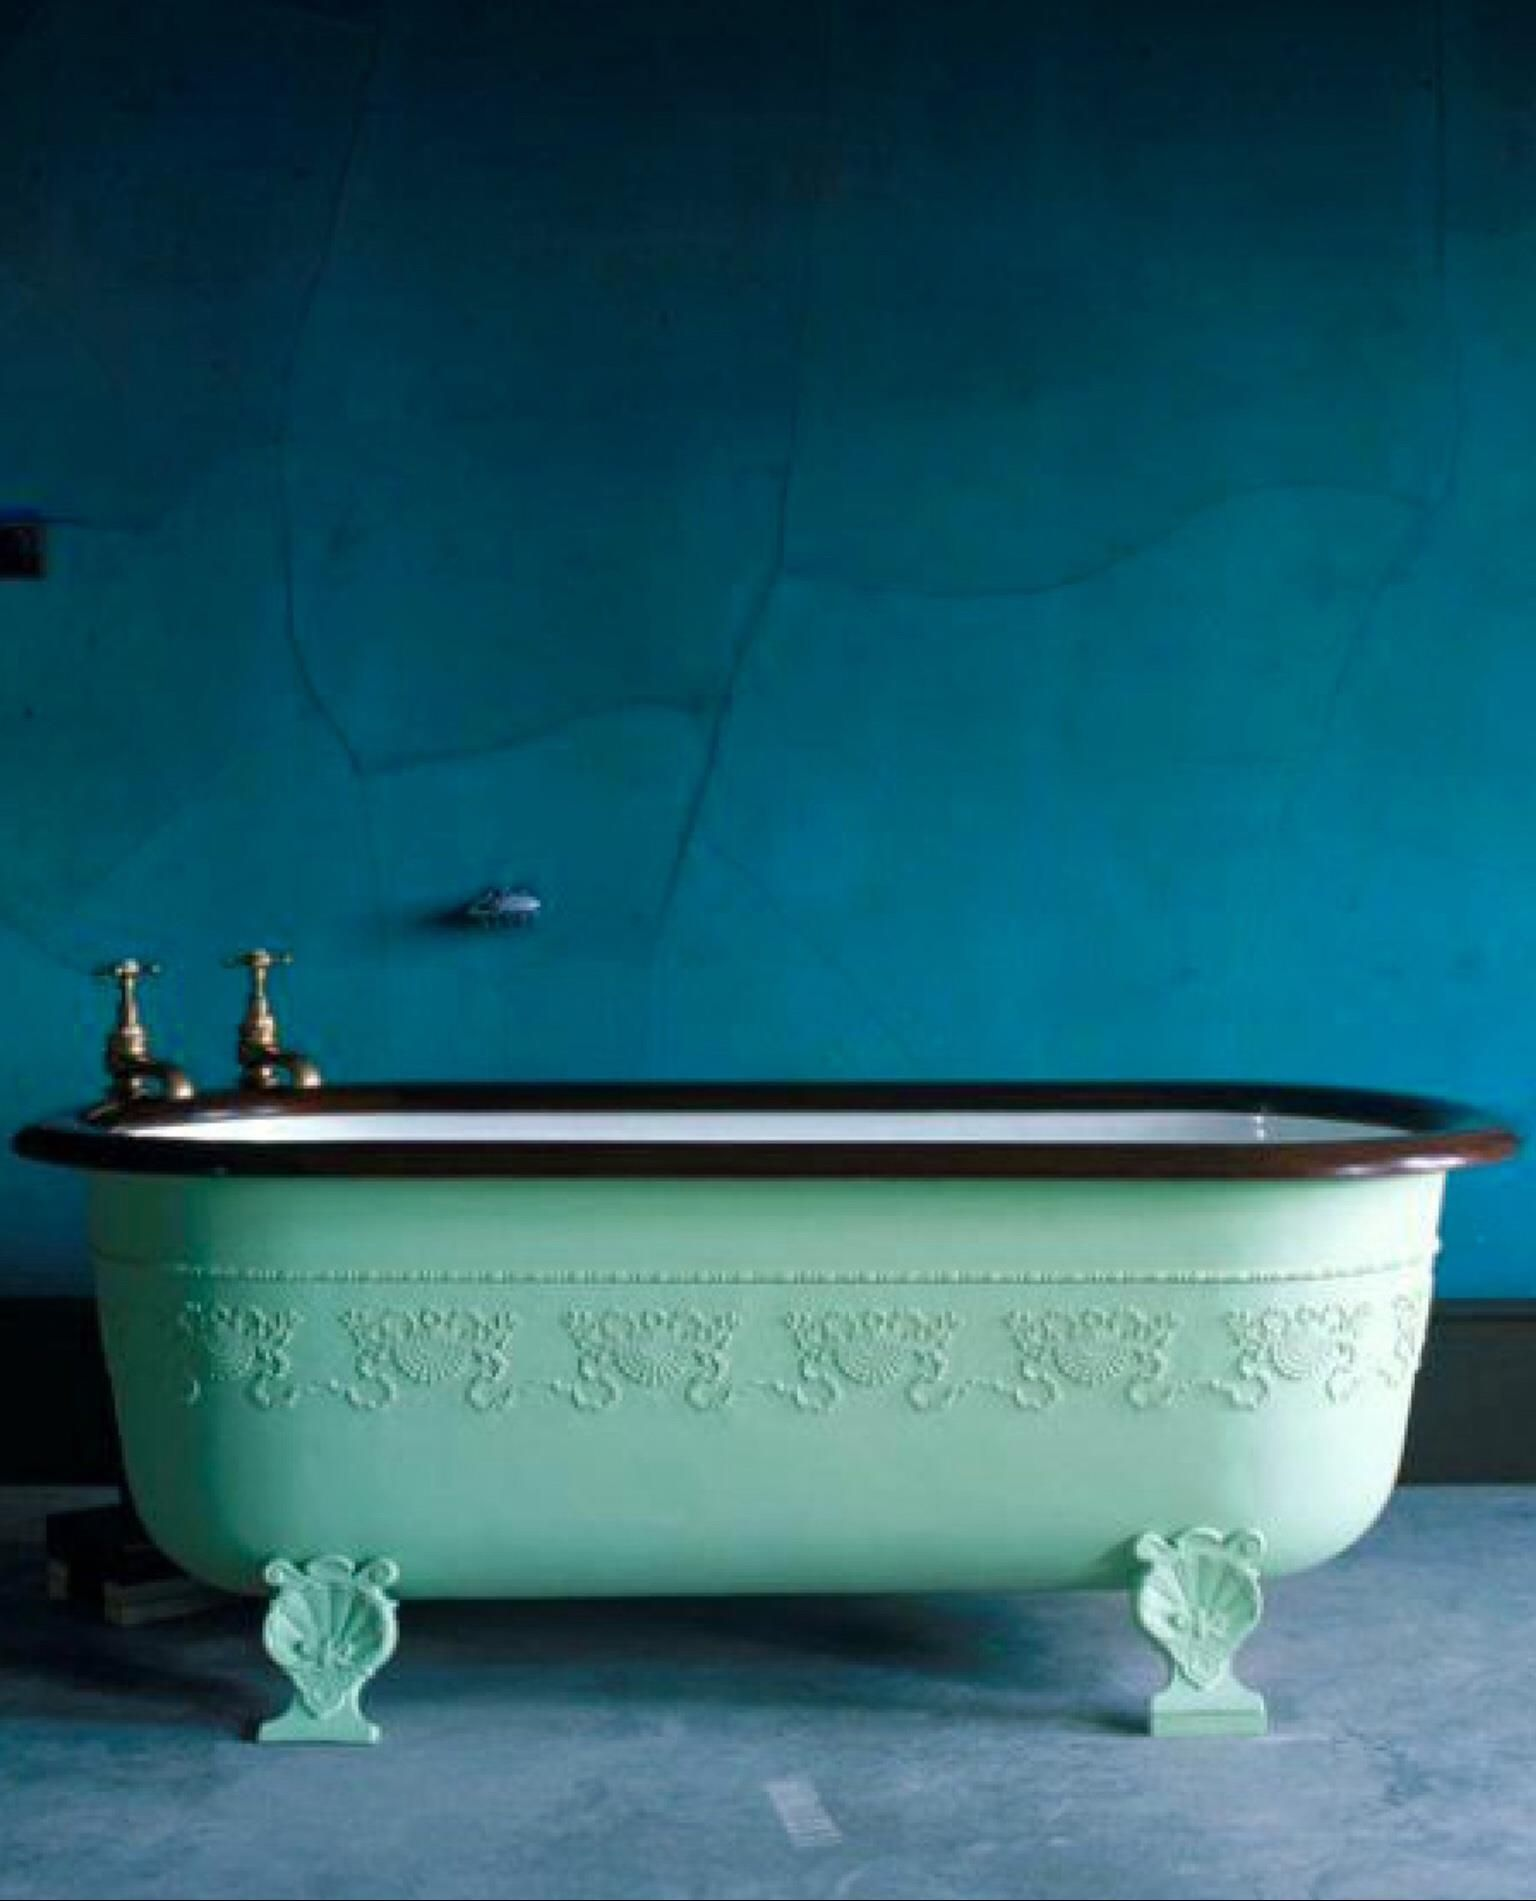 Explore Vintage Bathtub, Vintage Bathrooms, And More